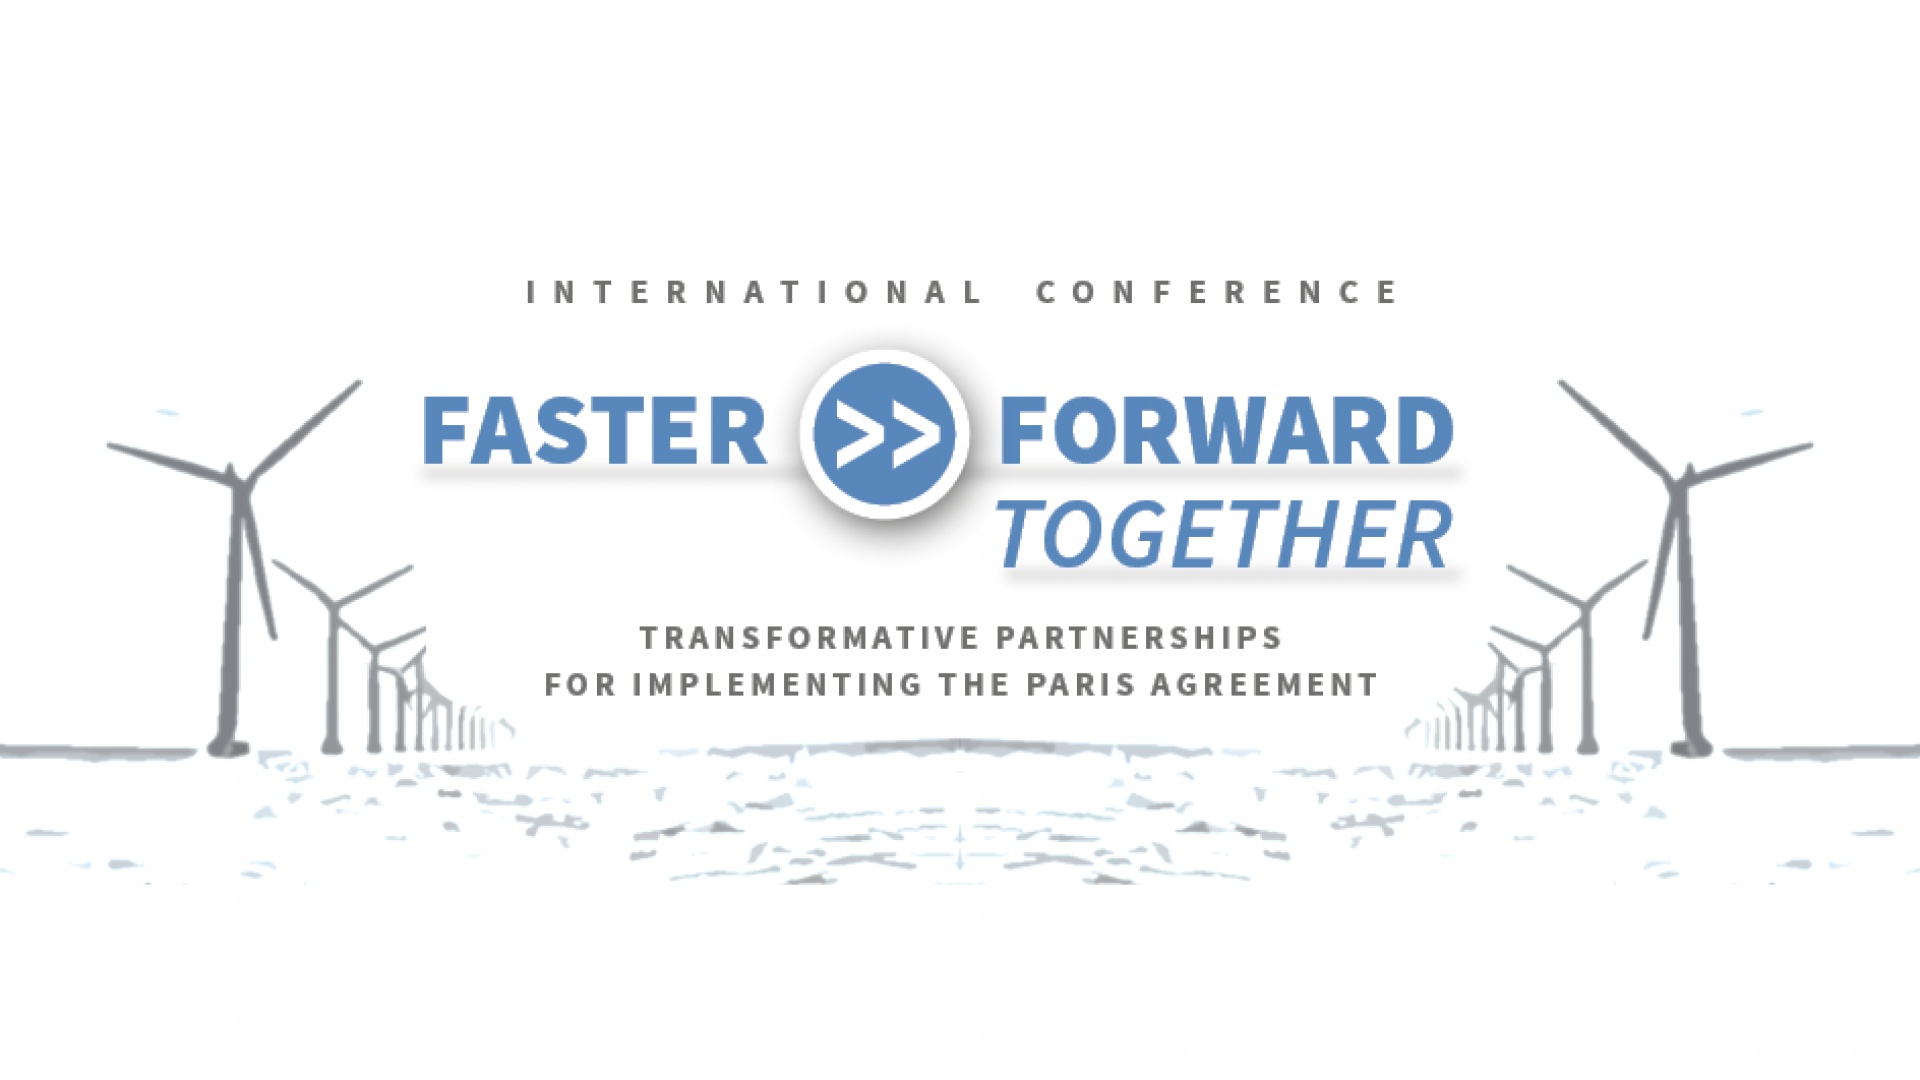 FASTER FORWARD CONFERENCE 2019